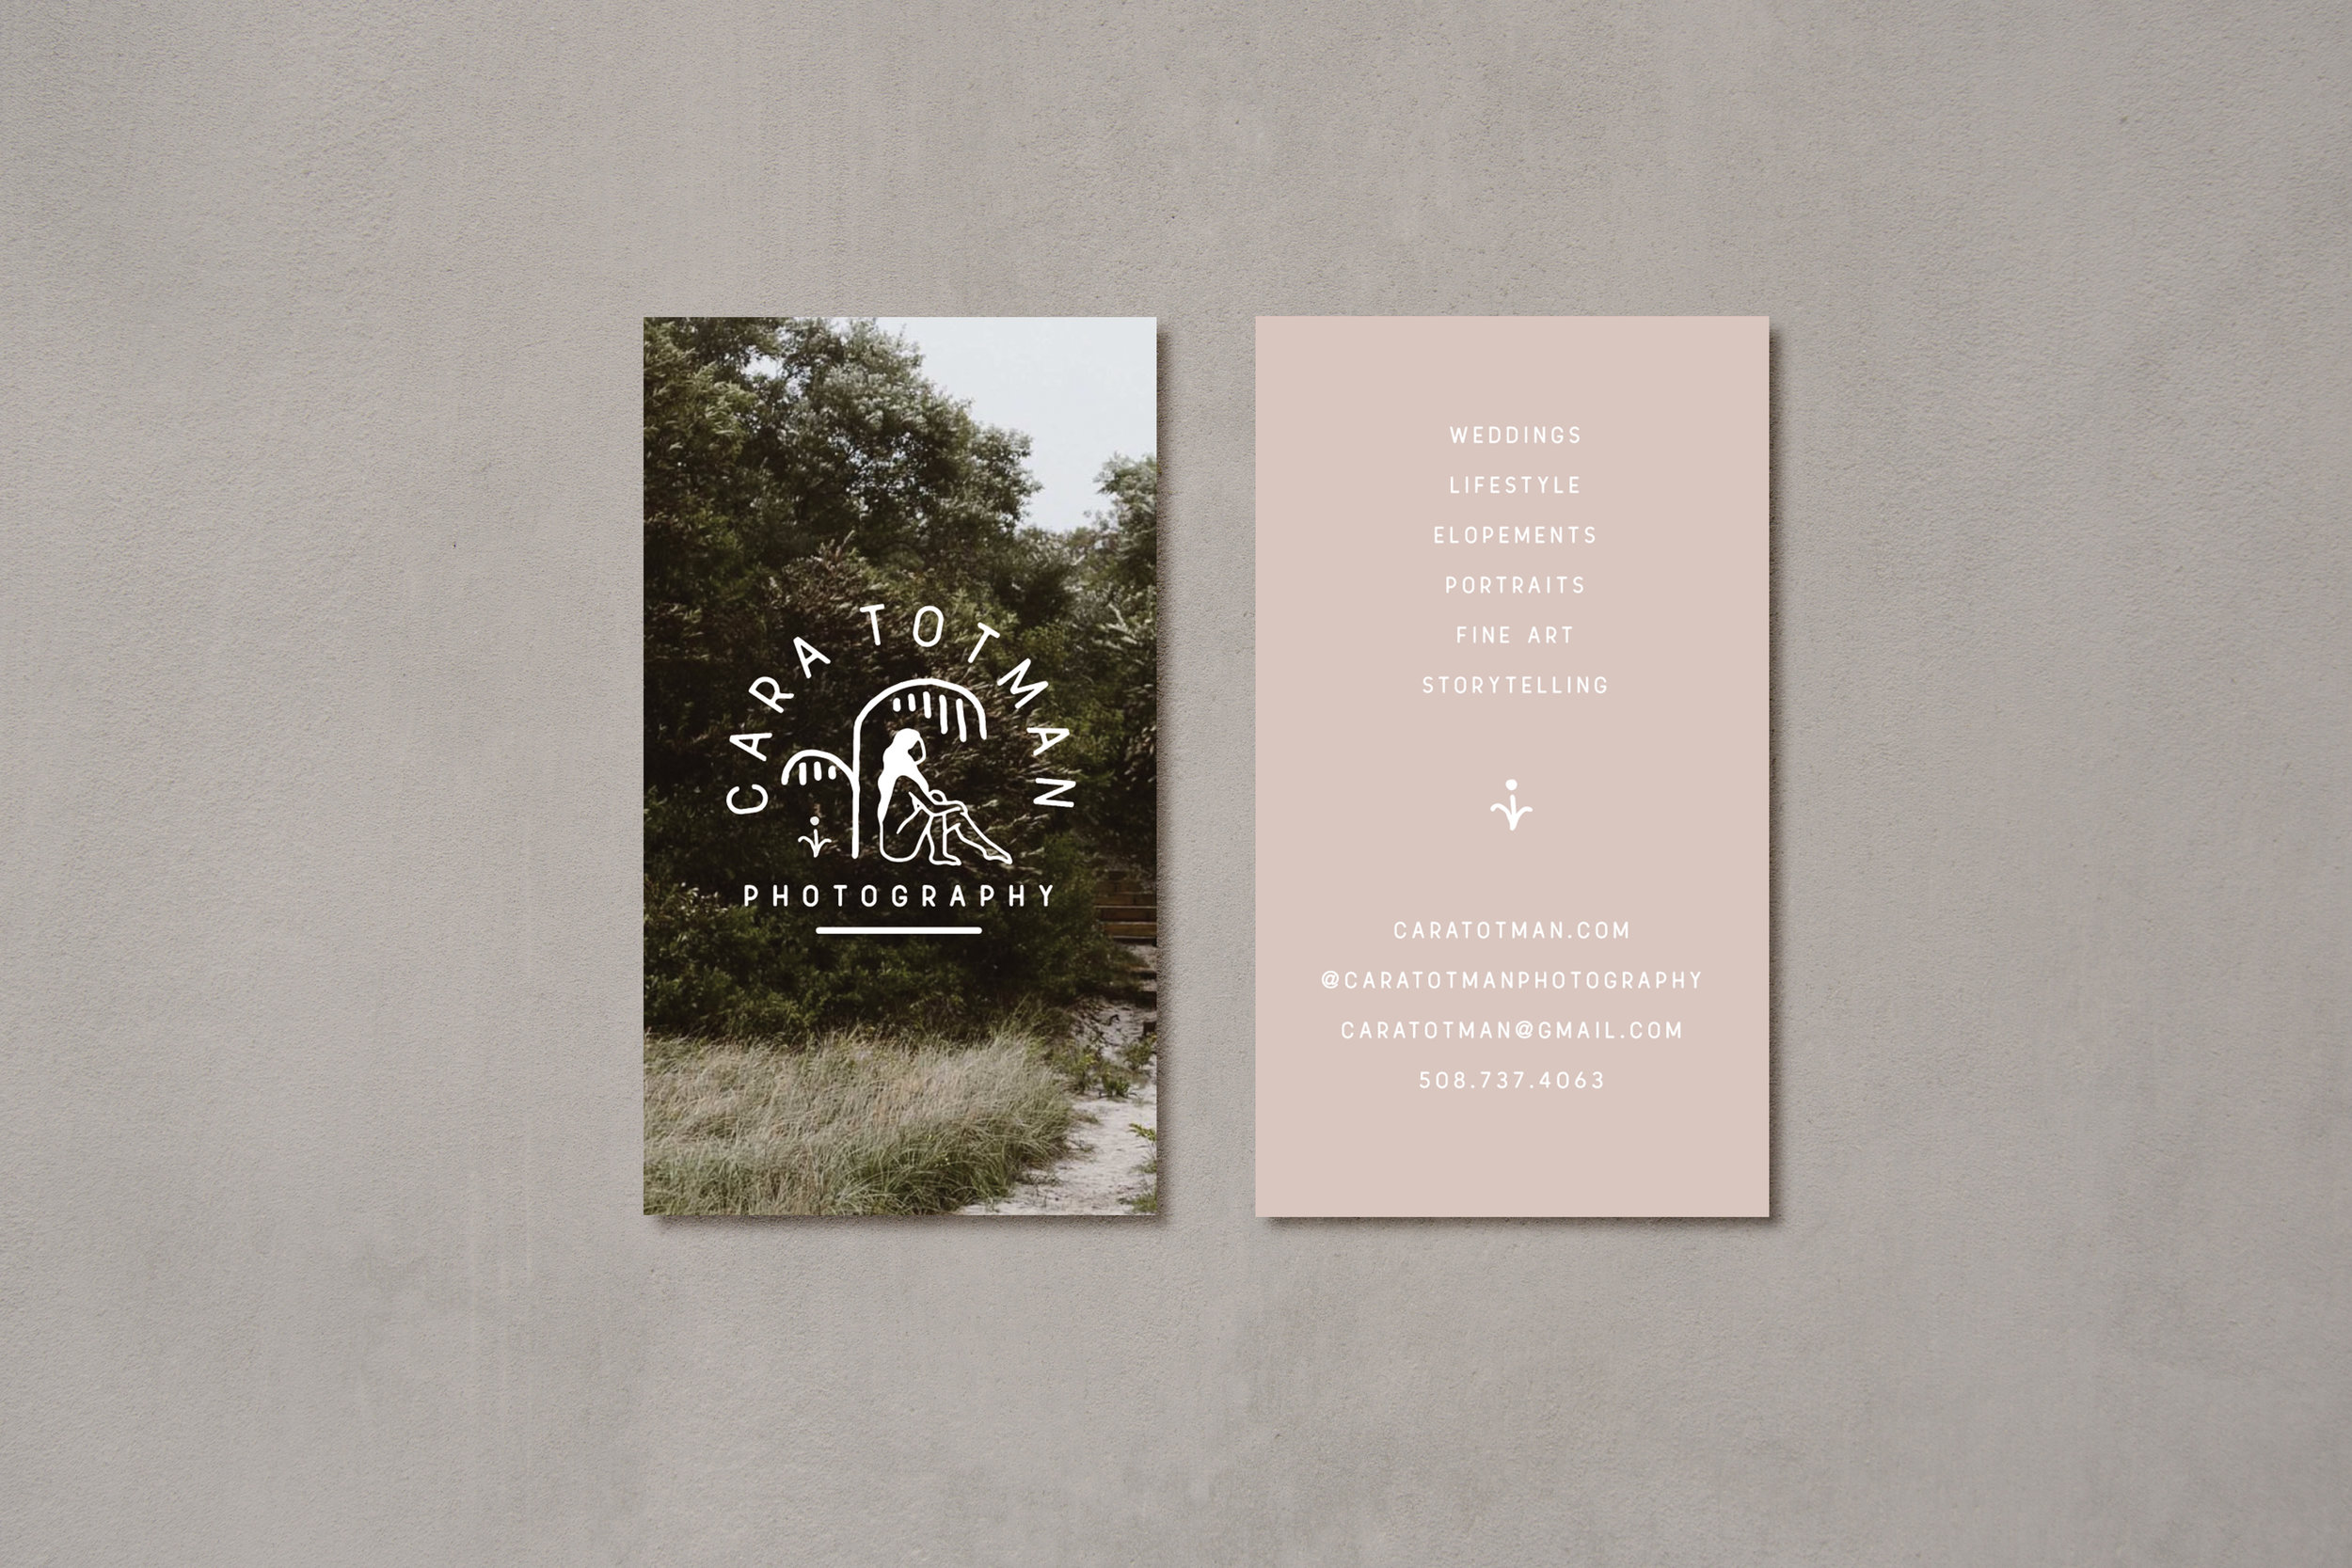 cara totman Business Card mock ups final.jpg